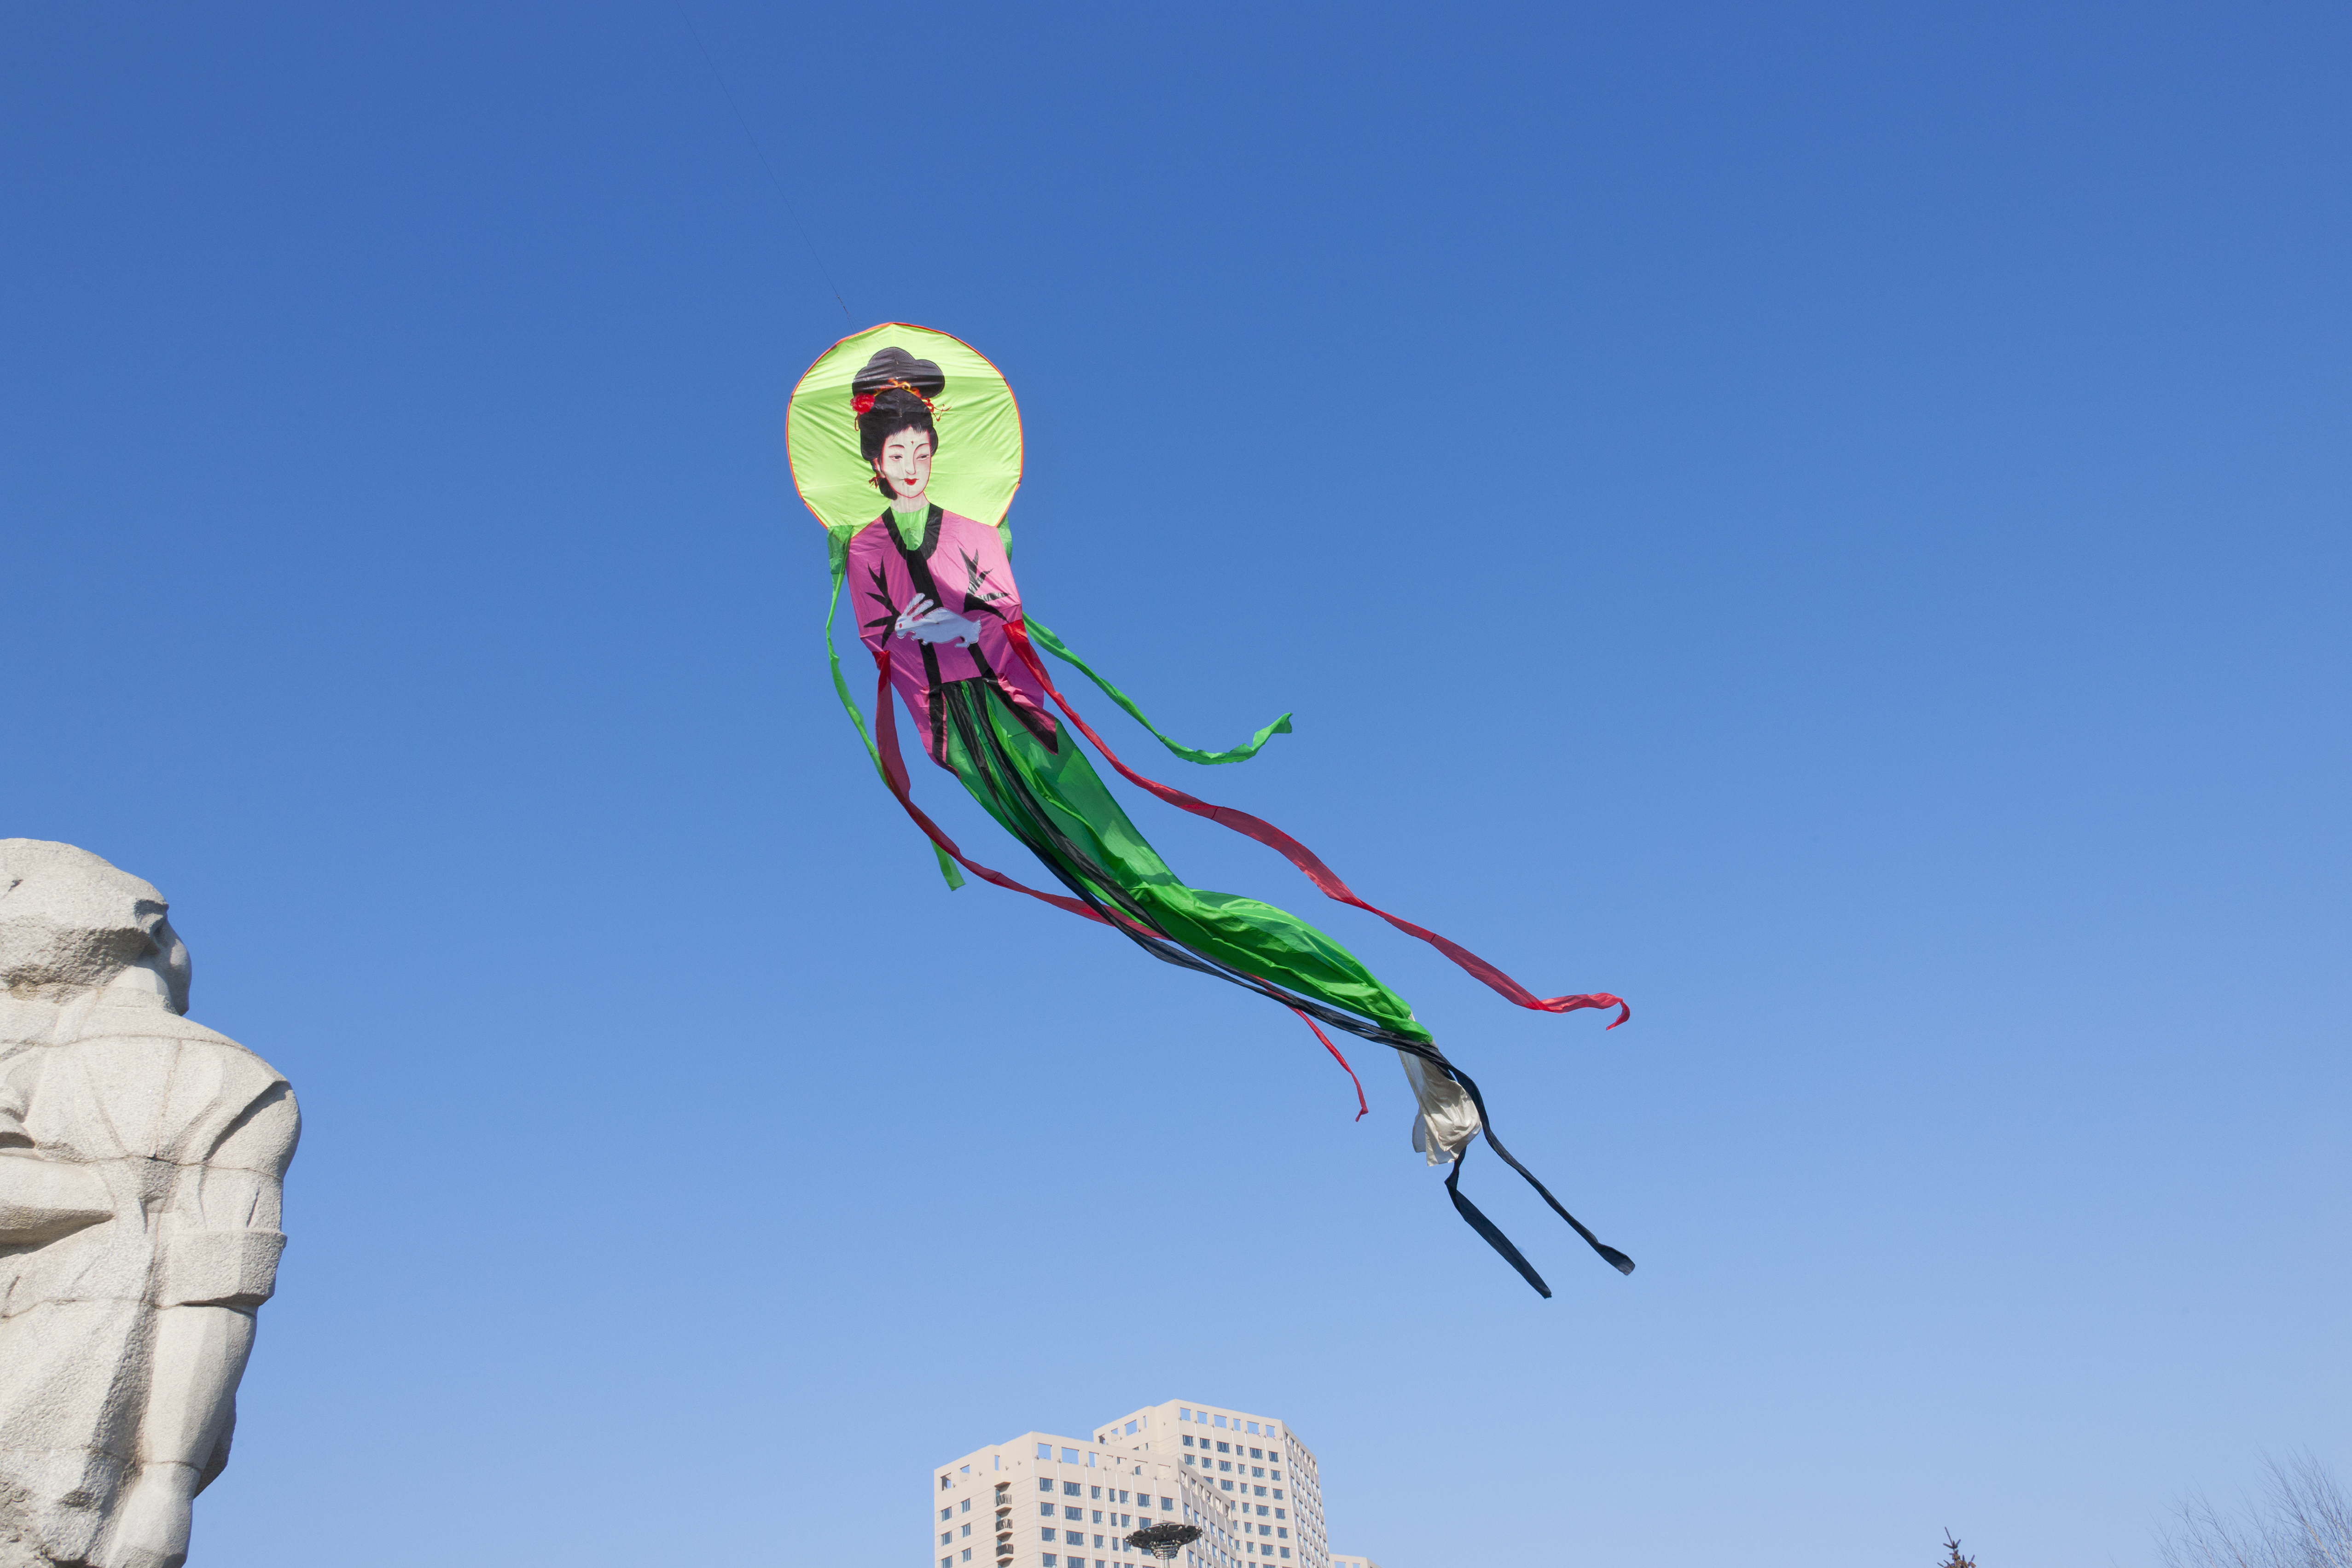 In this undated file photo, a kite of Chang'e, the Chinese moon goddess, flies in Mudanjiang, Heilongjiang province, China